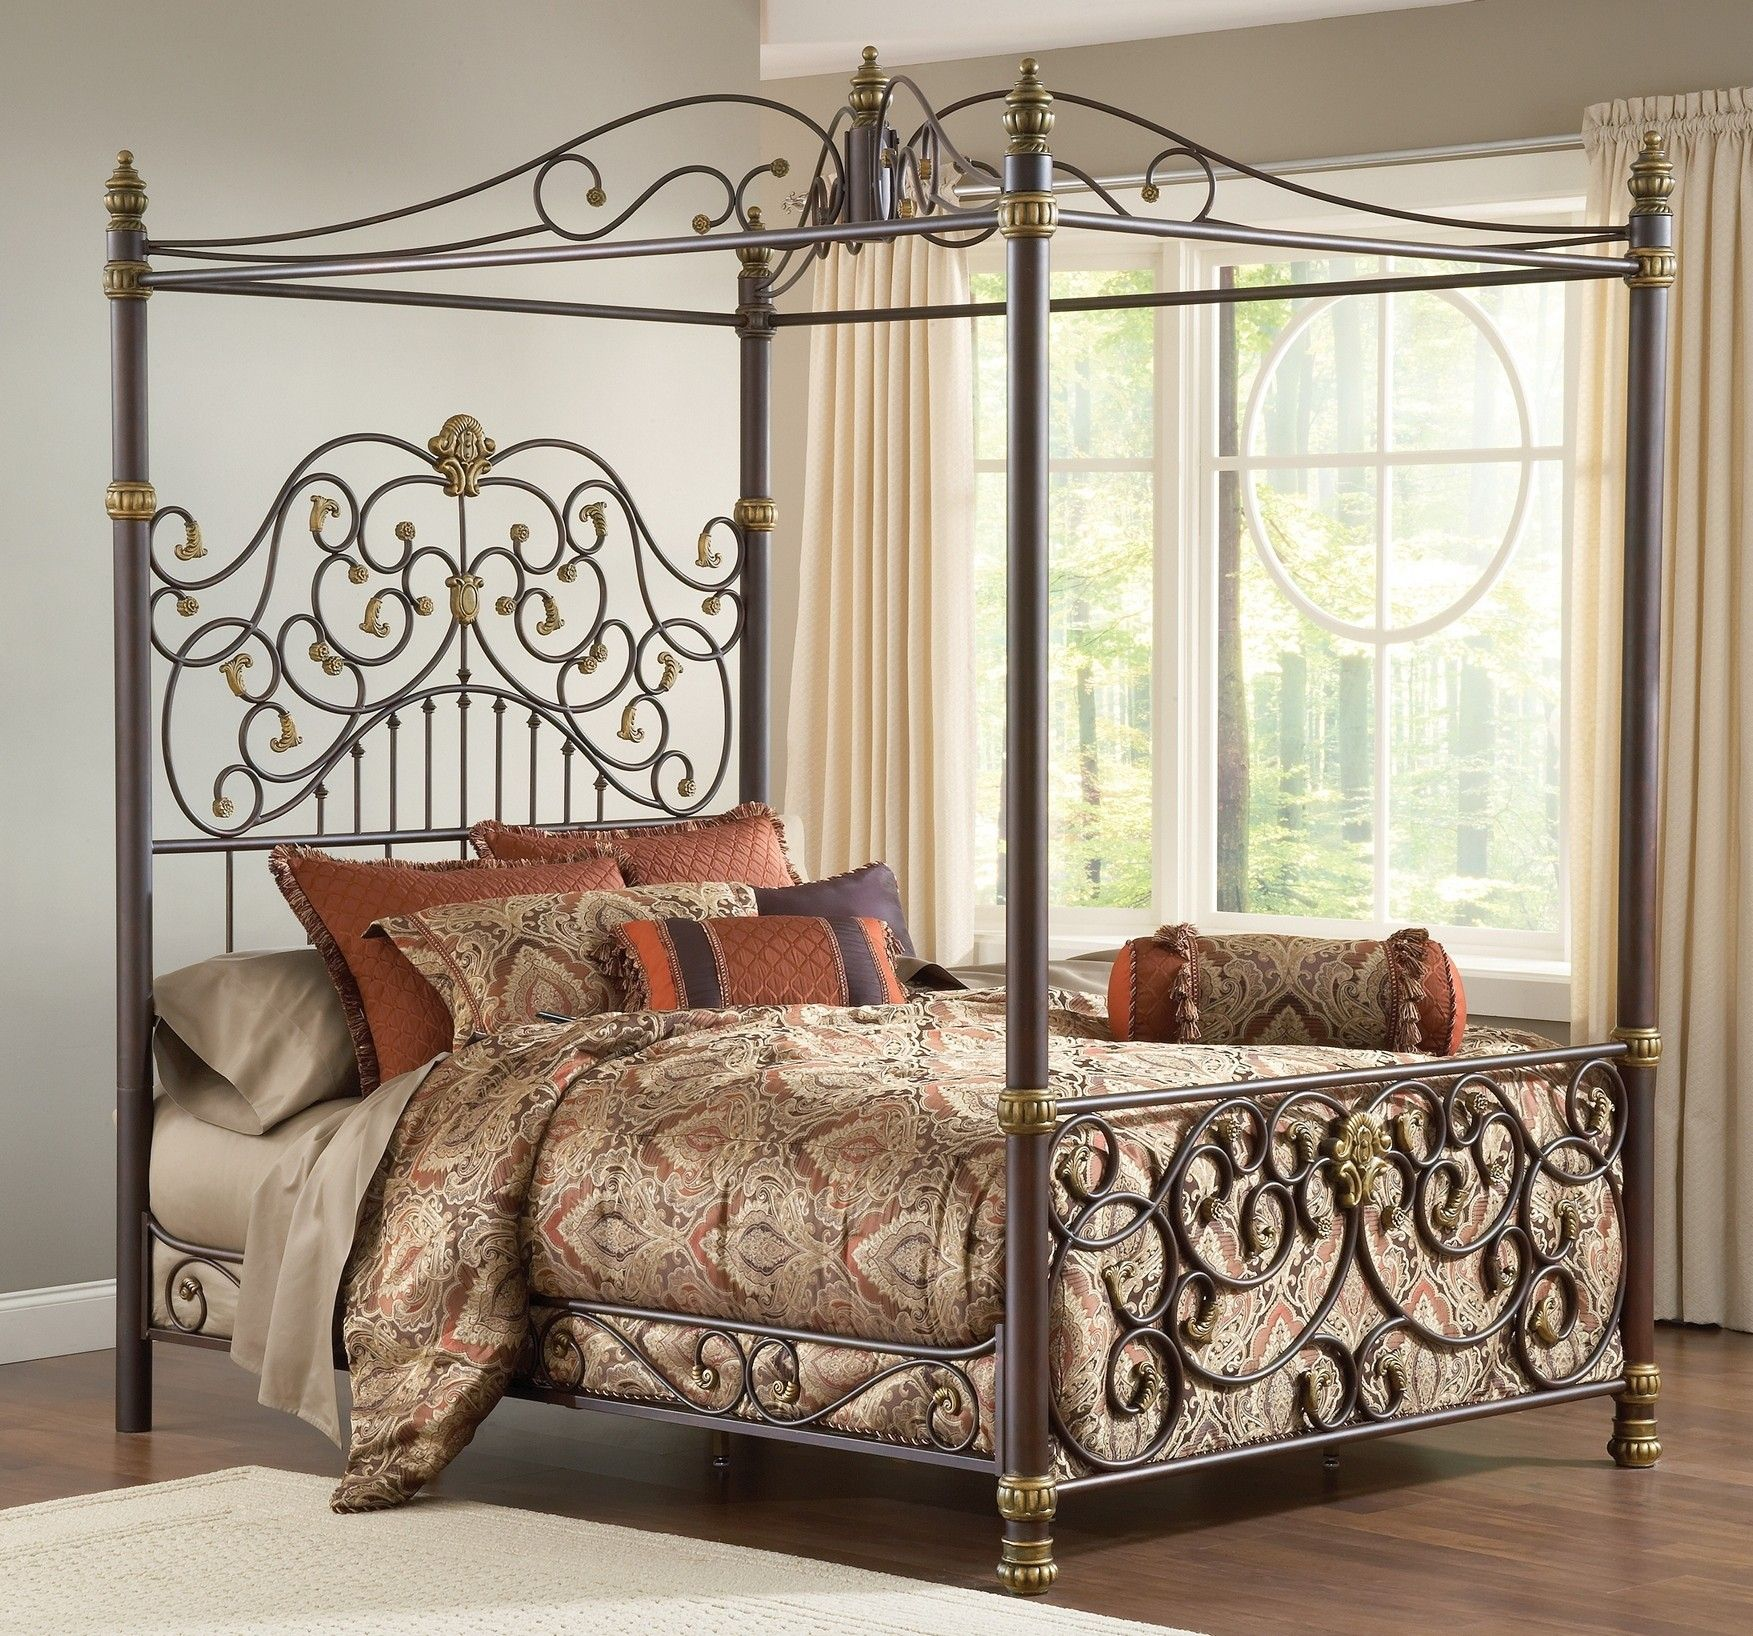 Image Result For Iron Bed Design Iron Canopy Bed Wrought Iron